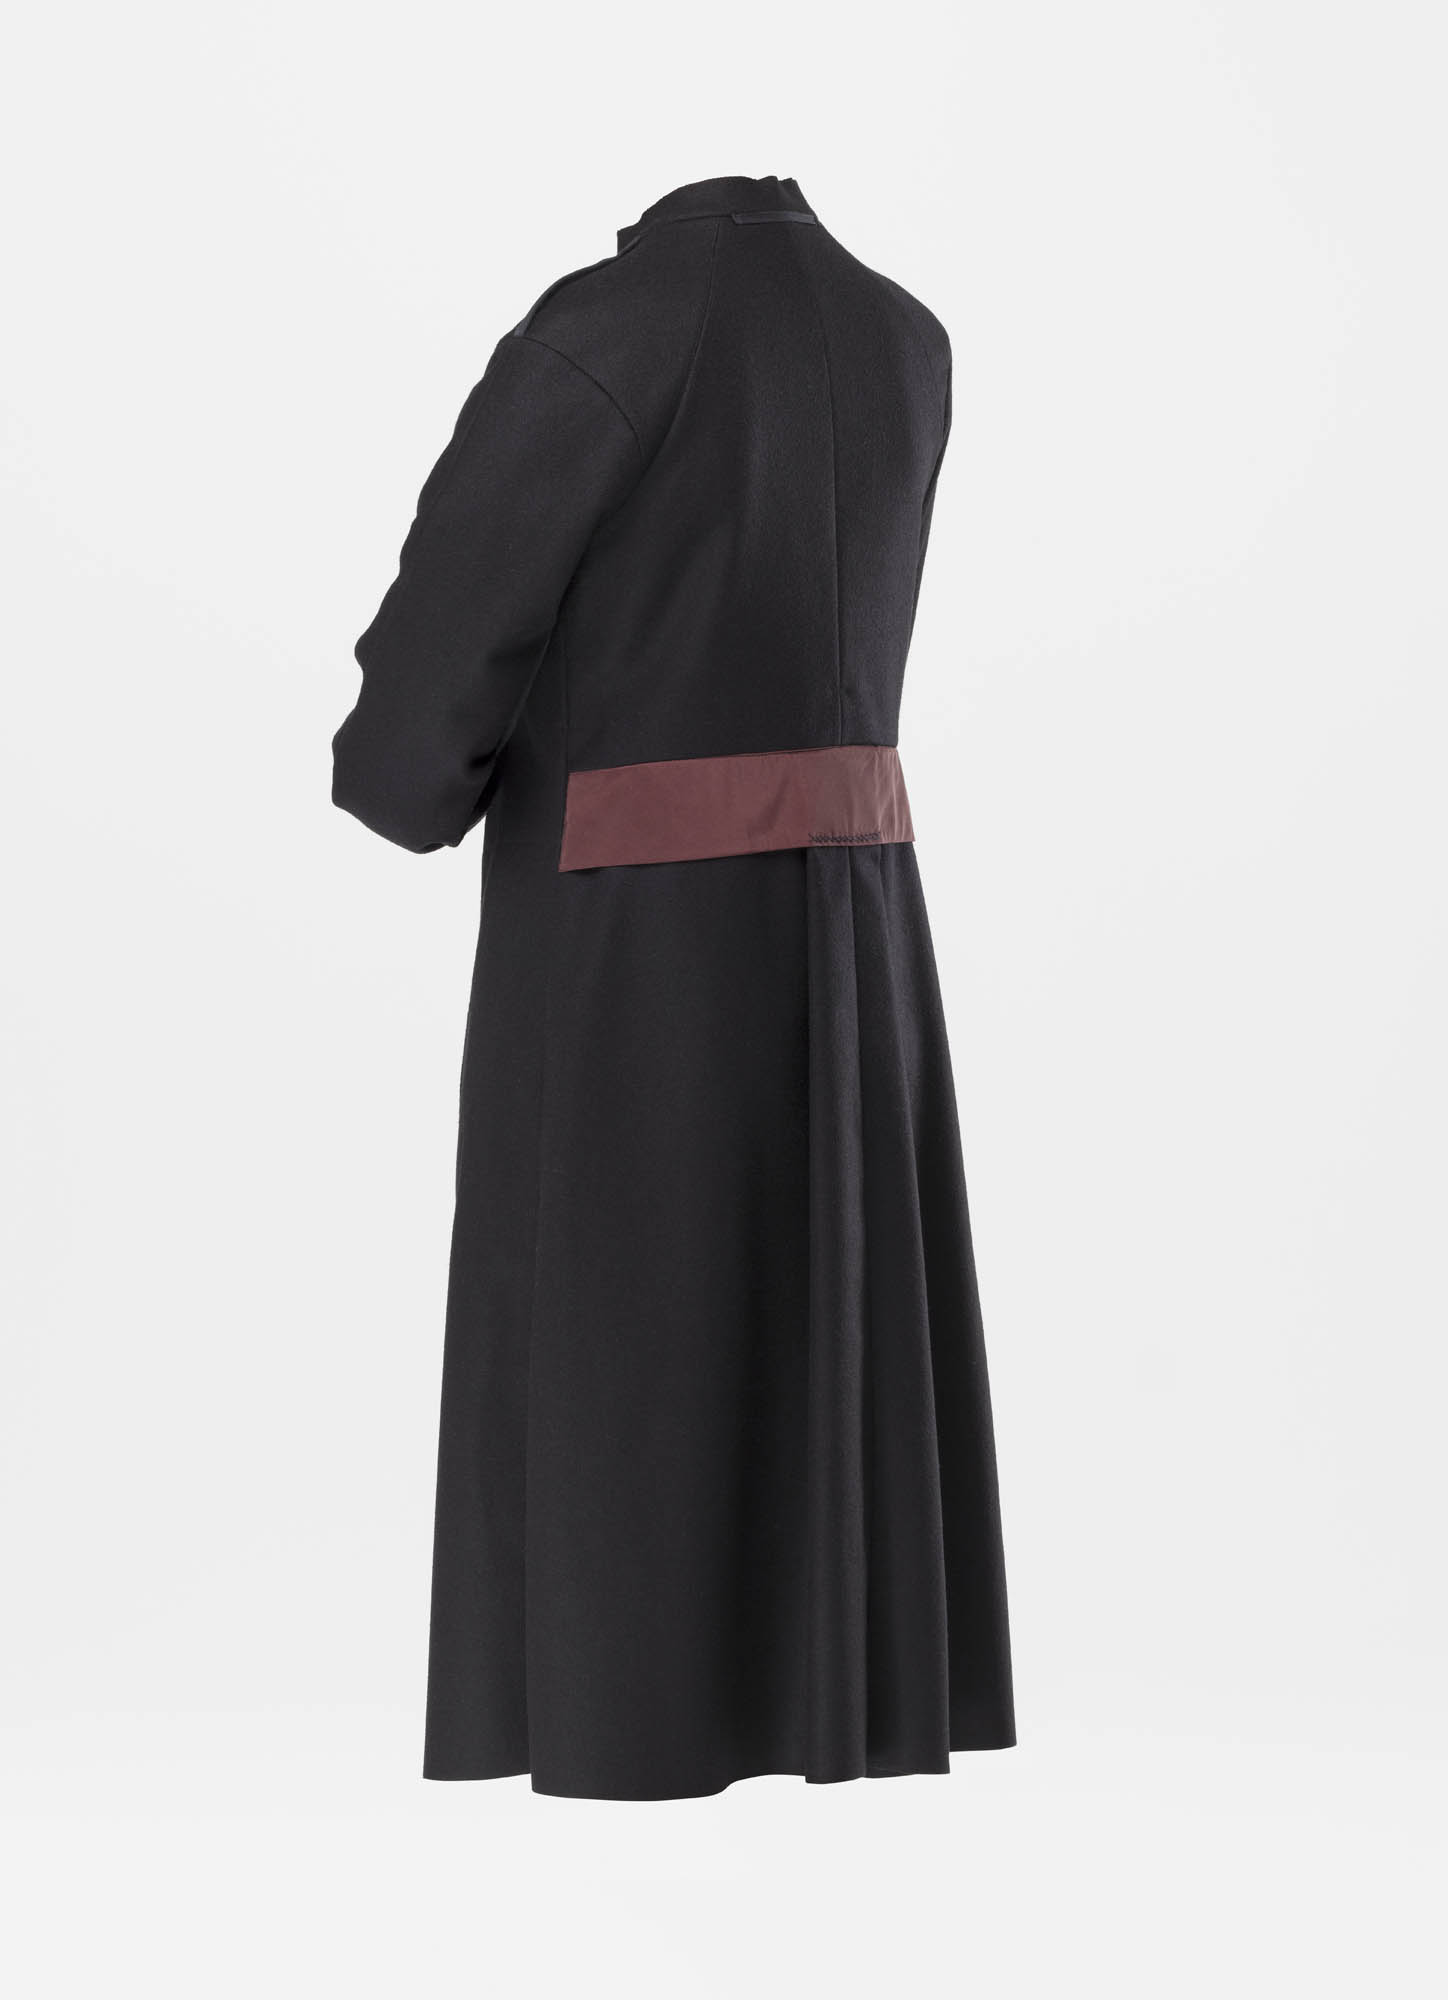 (sans titre) Anne Martine Perriard Robe-tablier